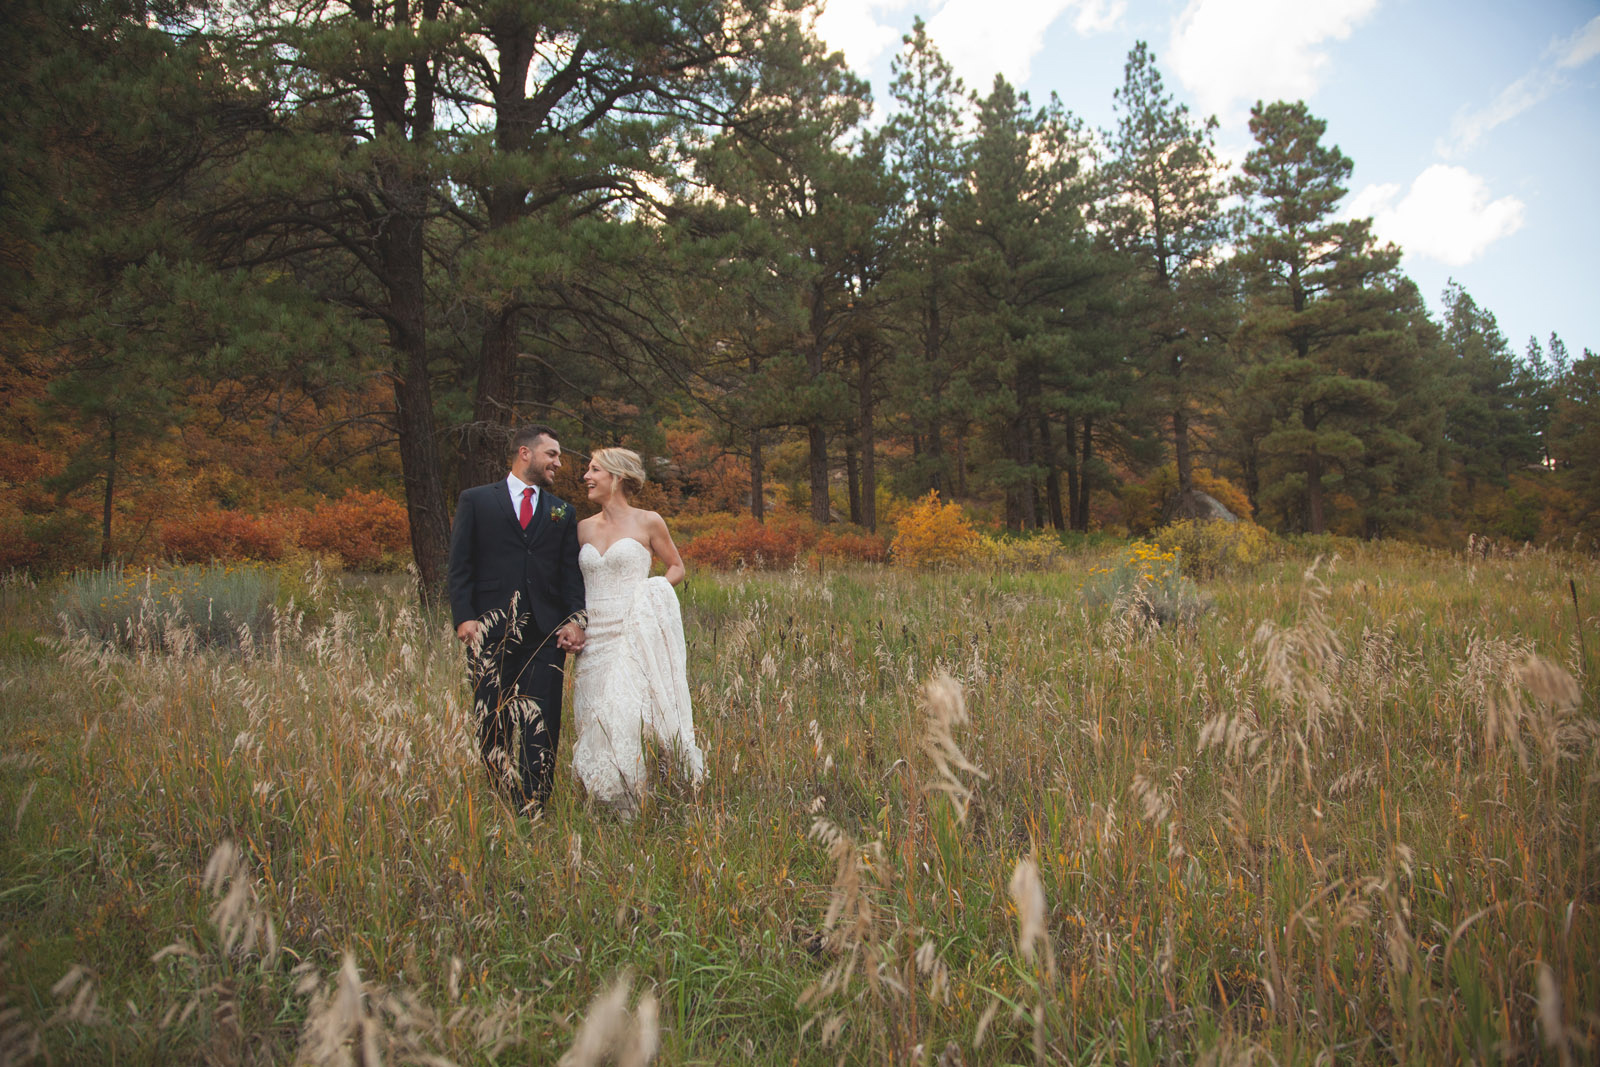 169-beautiful-bride-and-groom-photojournalist-portraits-at-elopement-wedding-in-durango-colorado-forest